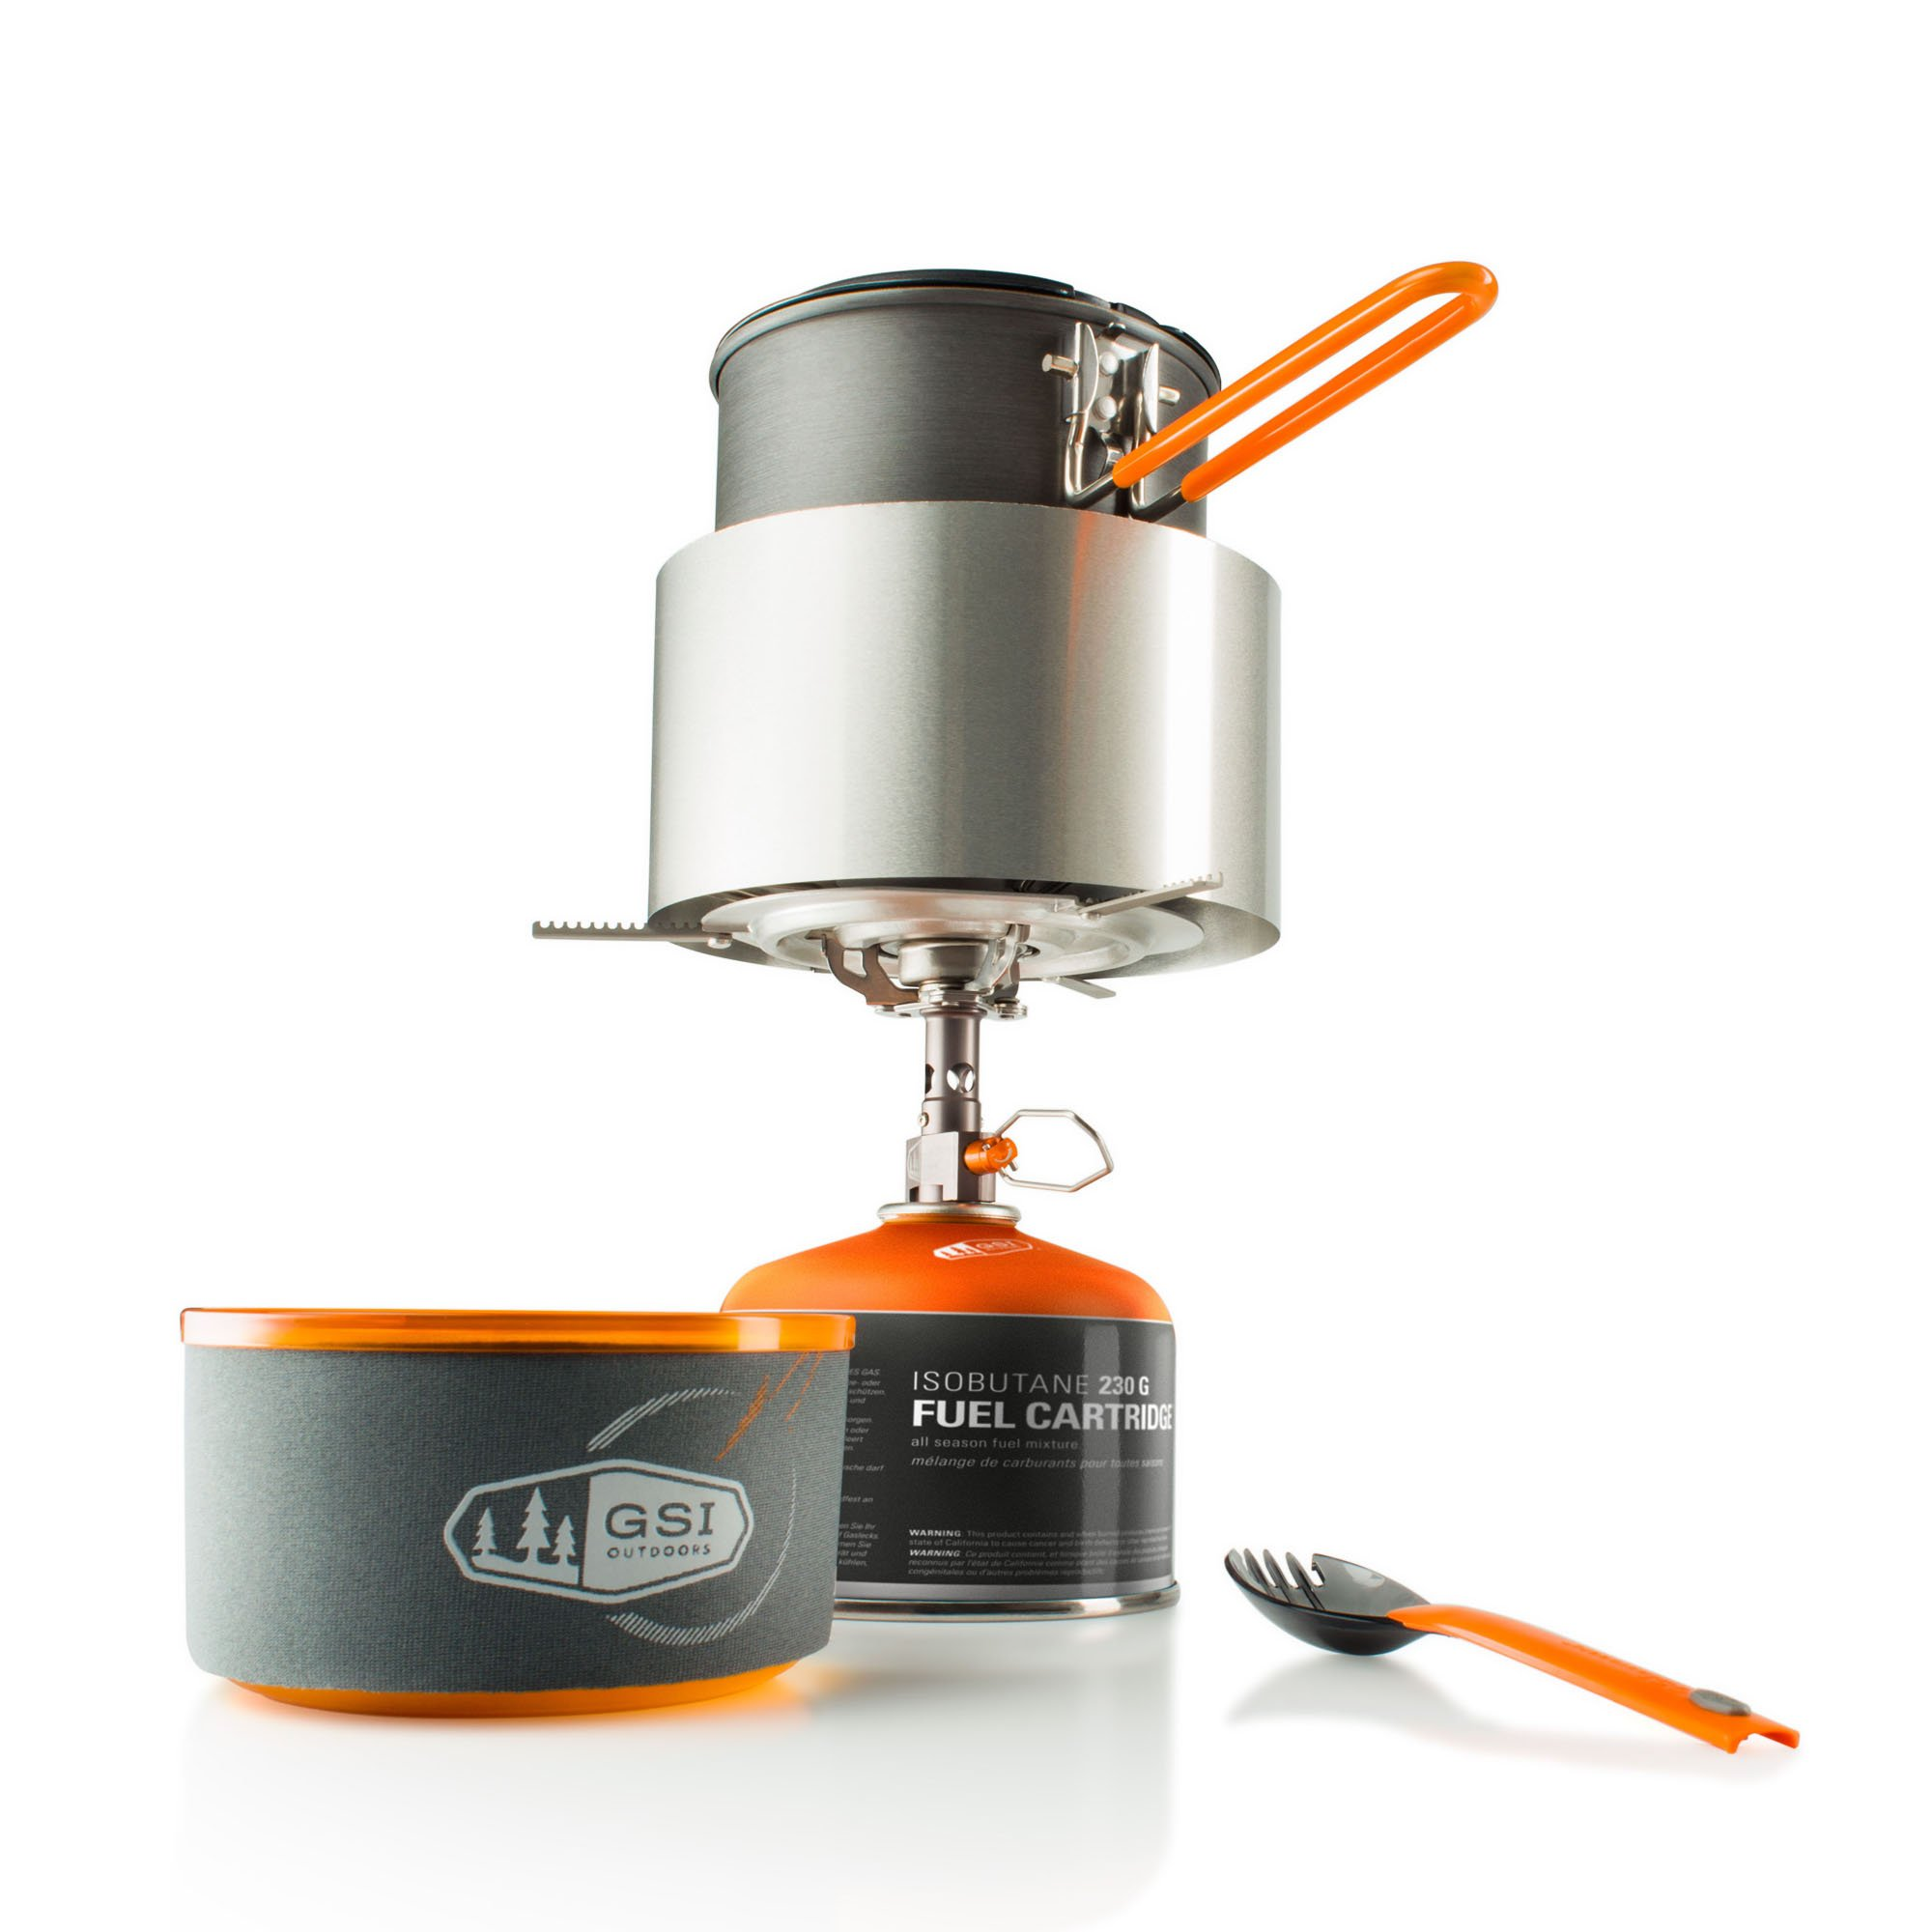 Superior Backcountry Cookware Since 1985 Halulite Minimalist Complete GSI Outdoors Nesting Cook Set